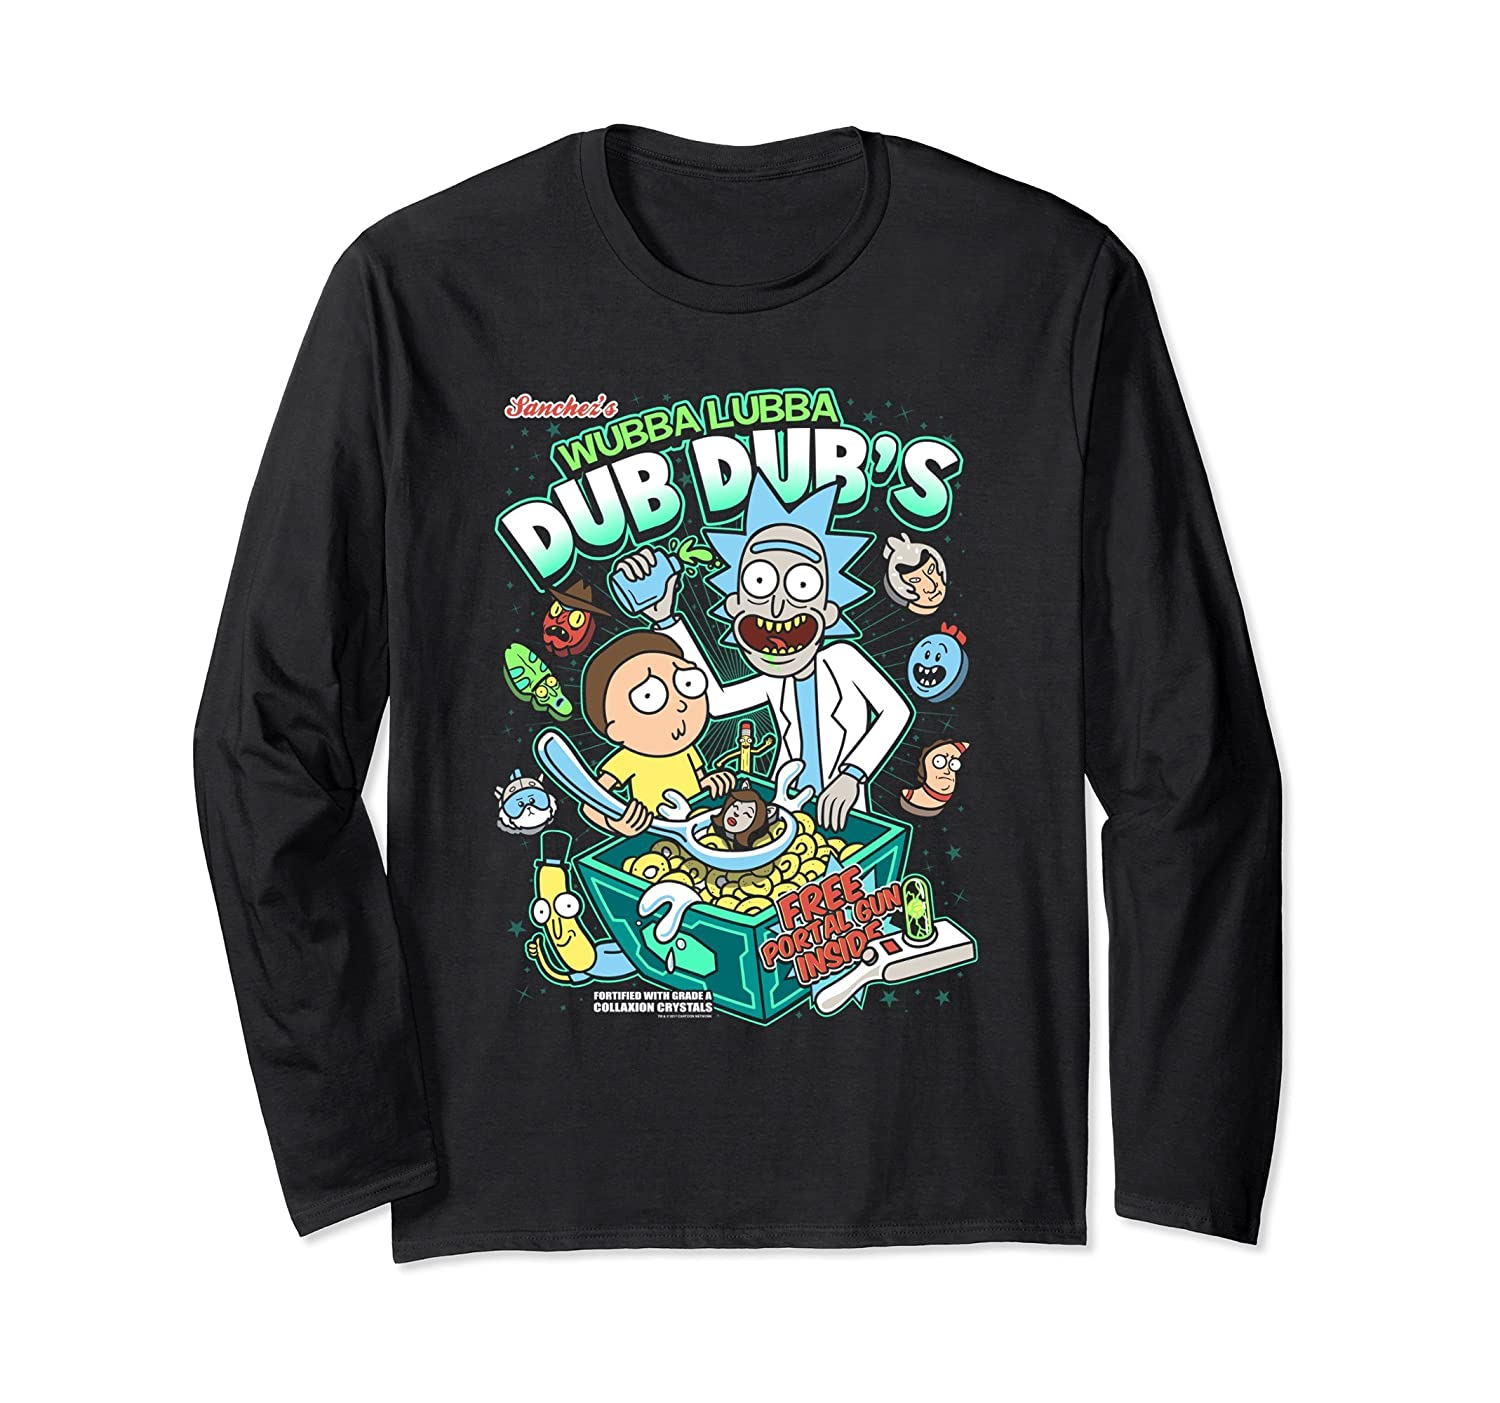 Wubba Luba Dub Dub's Cereal – Rick & Morty Long Sleeve Shirt-Awarplus